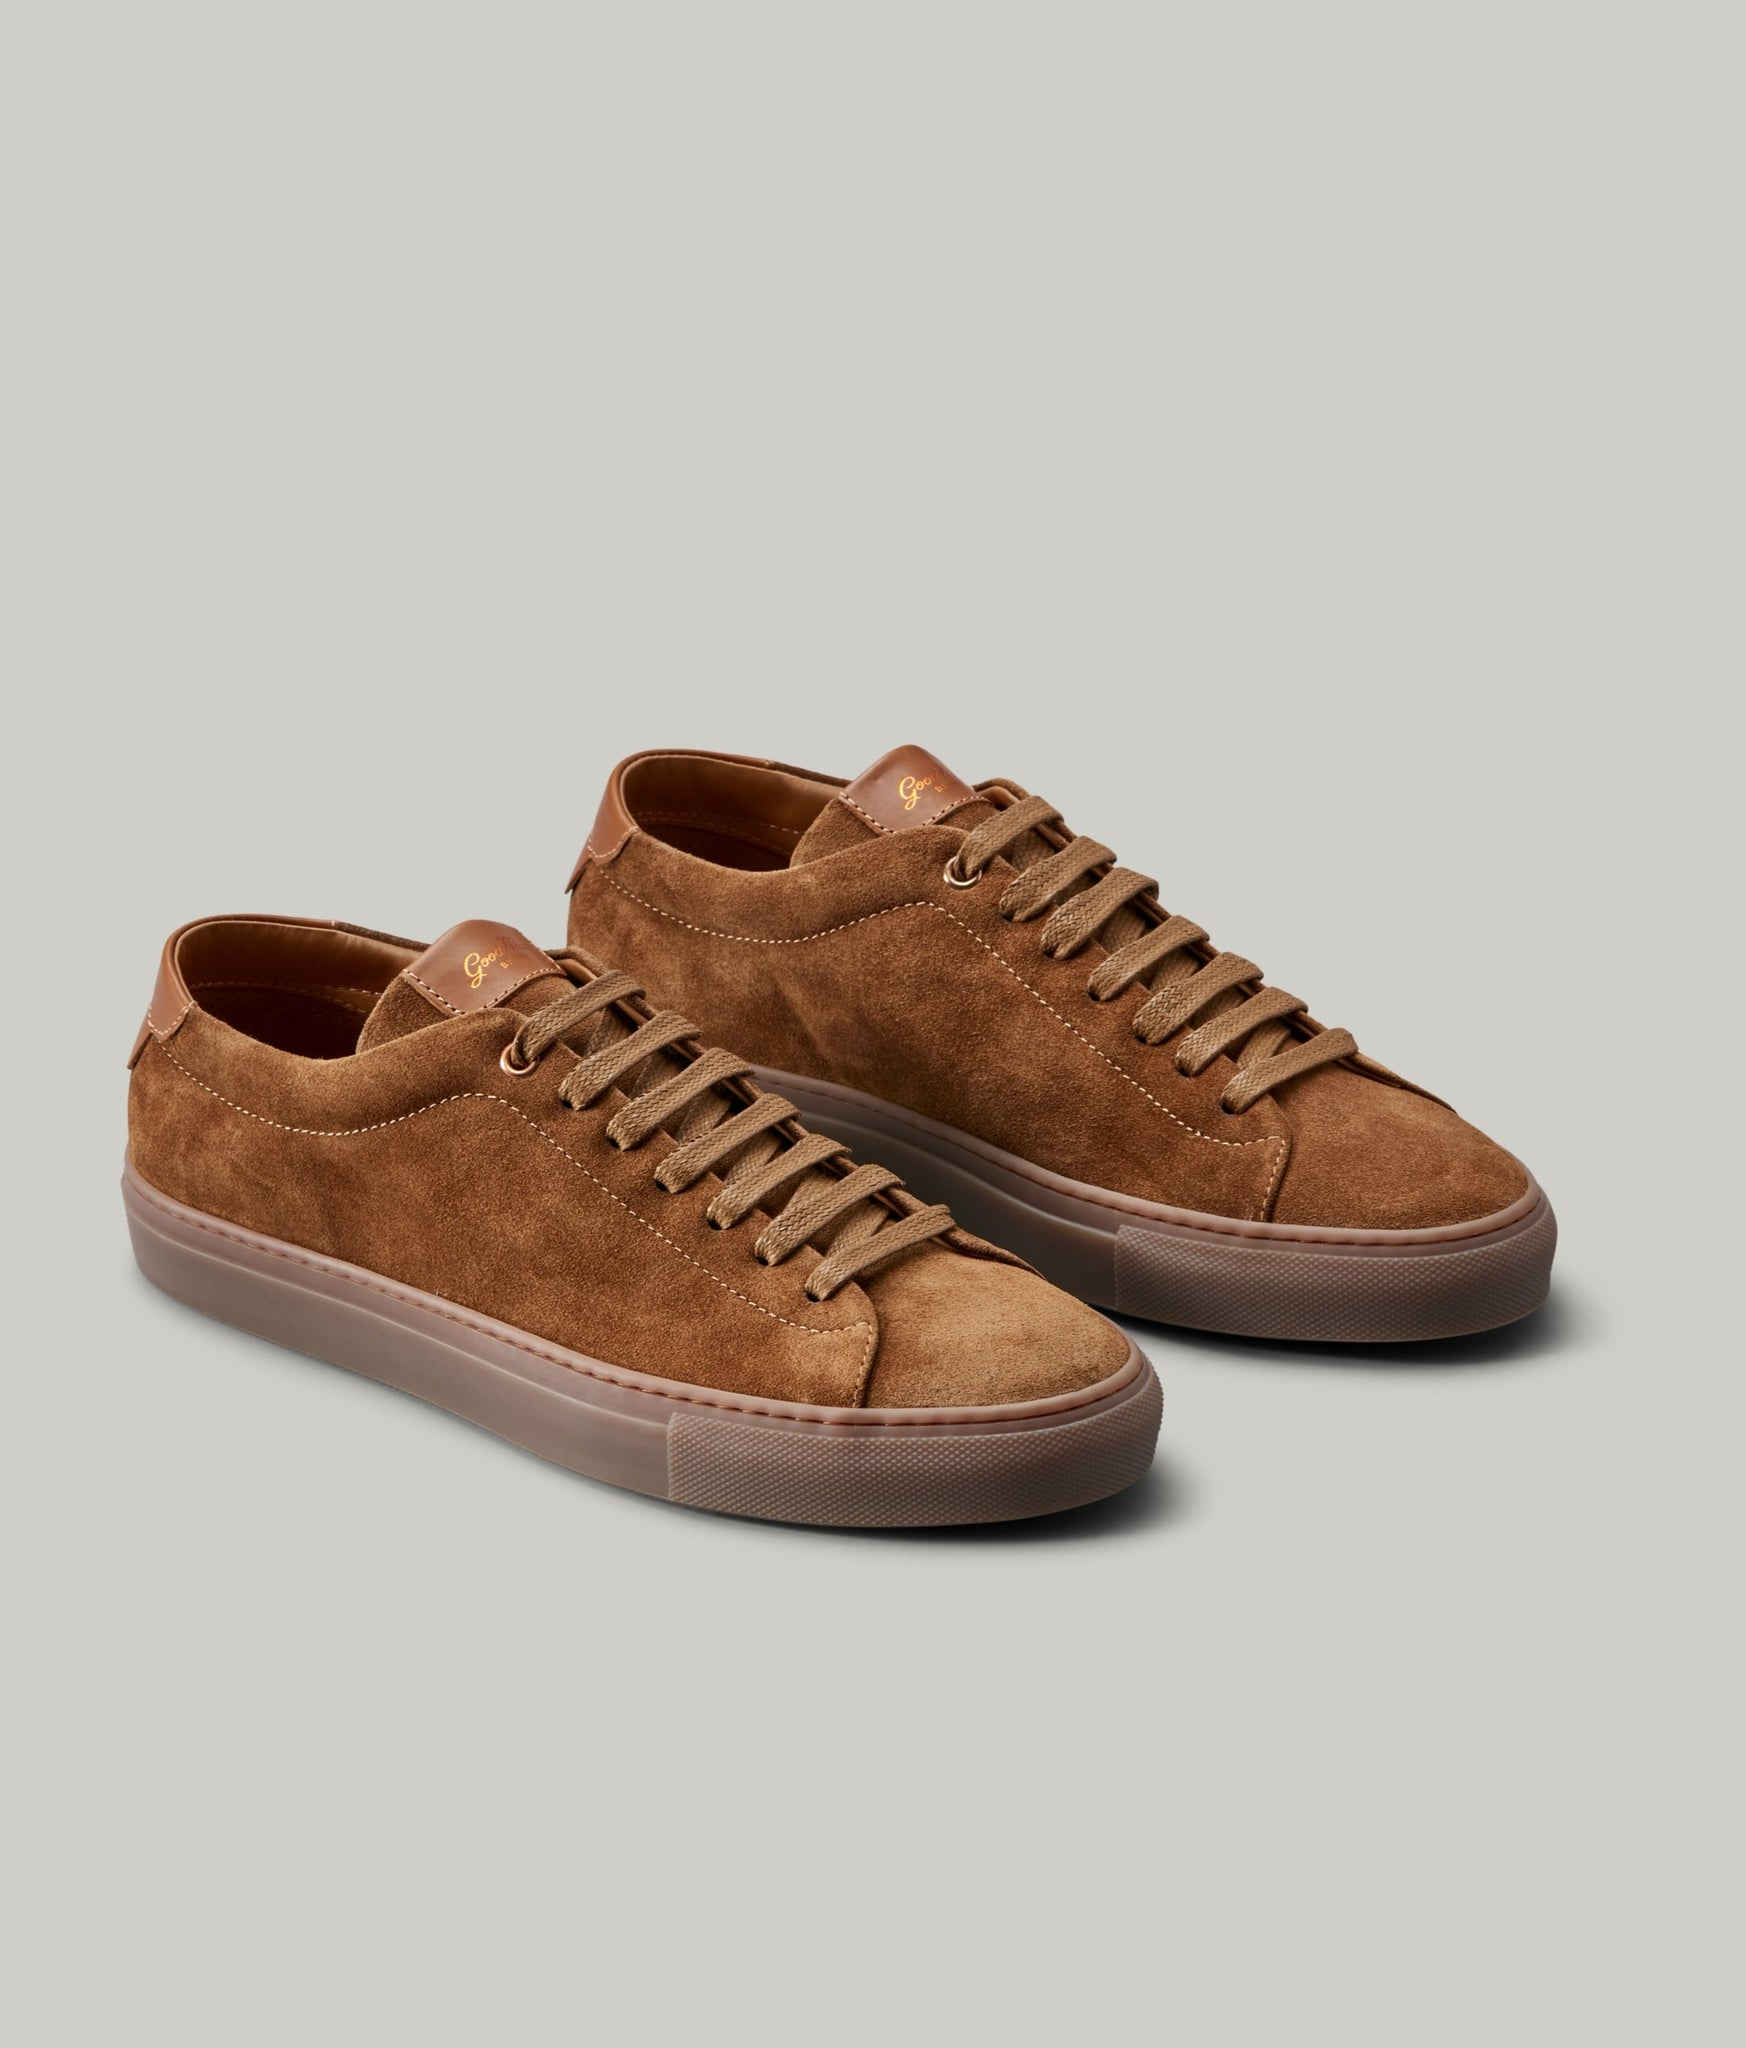 Edge Mono Lo Top Sneaker in Suede - Snuff